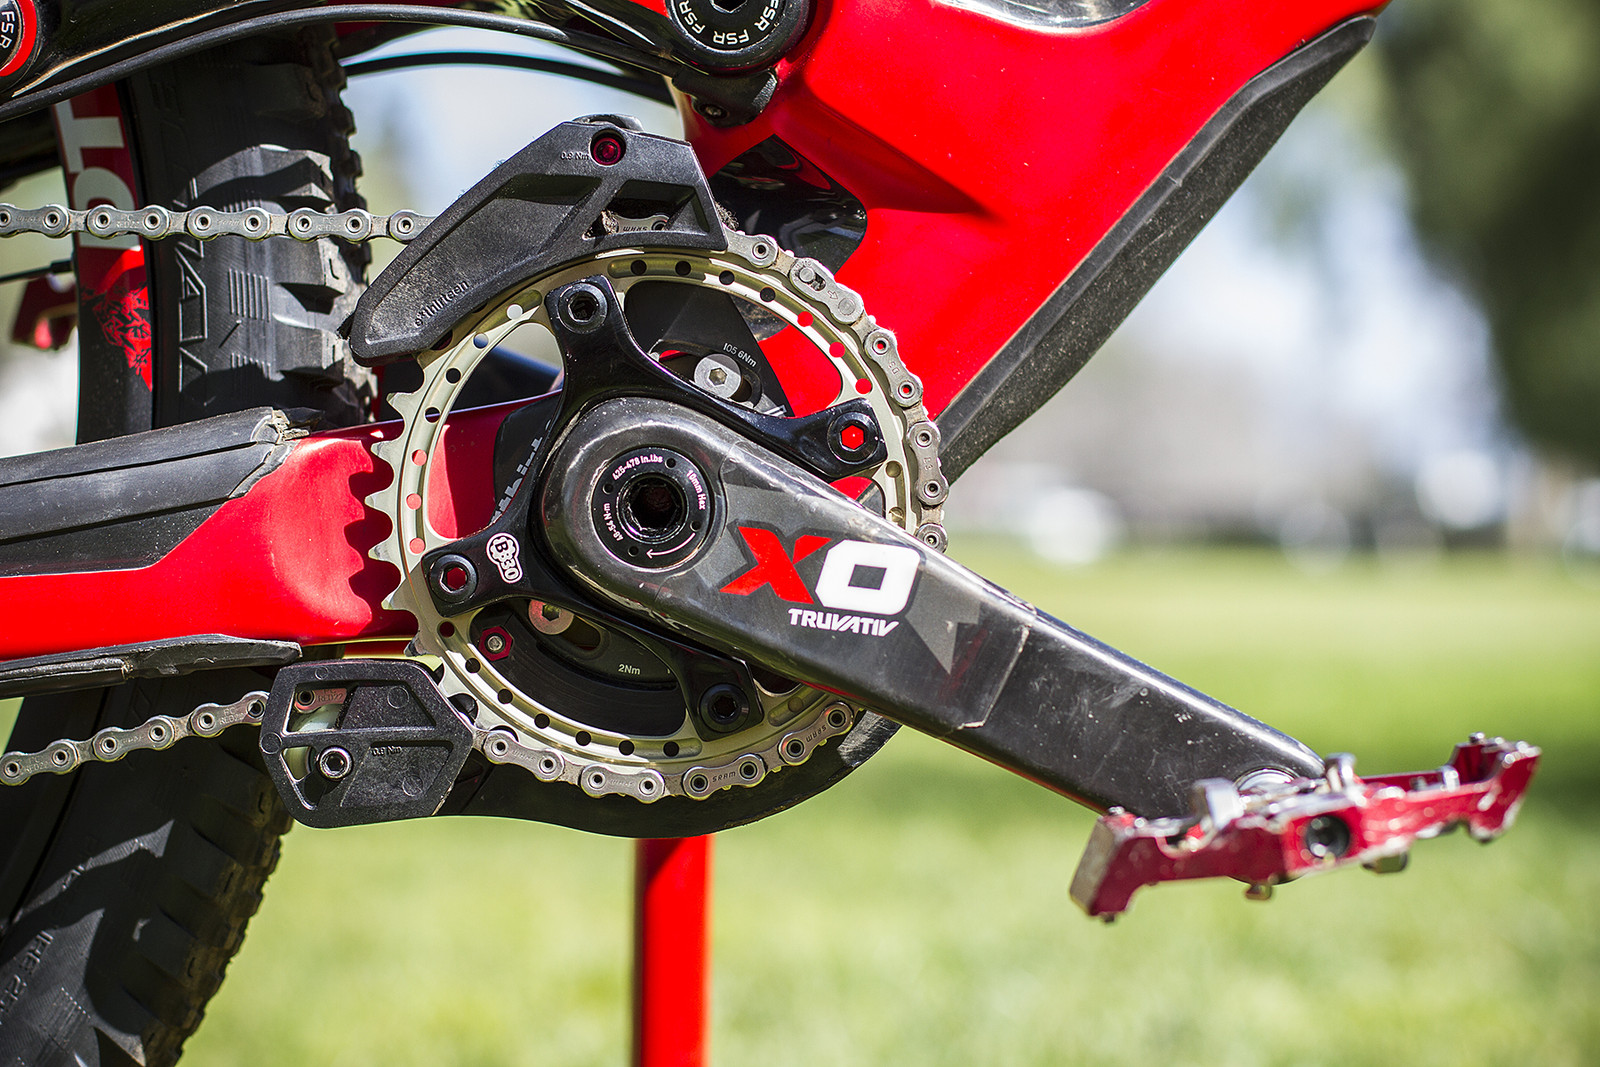 Truvativ X0 Carbon Cranks with Renthal 34t Chainring - Pro Bike Check: Aaron Gwin's Specialized S-WORKS Demo 8 - Mountain Biking Pictures - Vital MTB